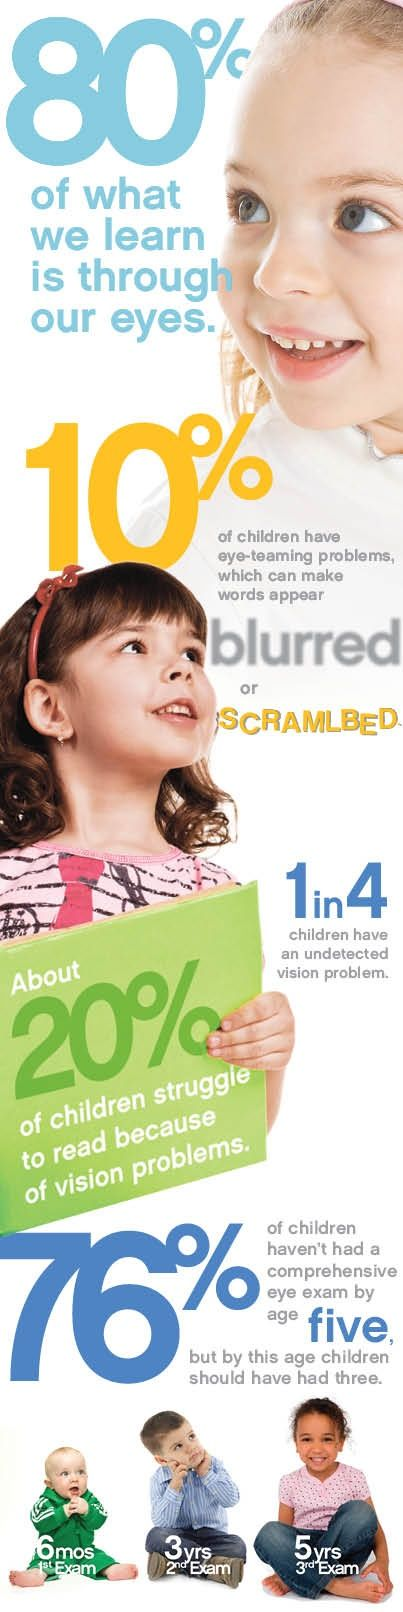 Kids vision health is important early on!